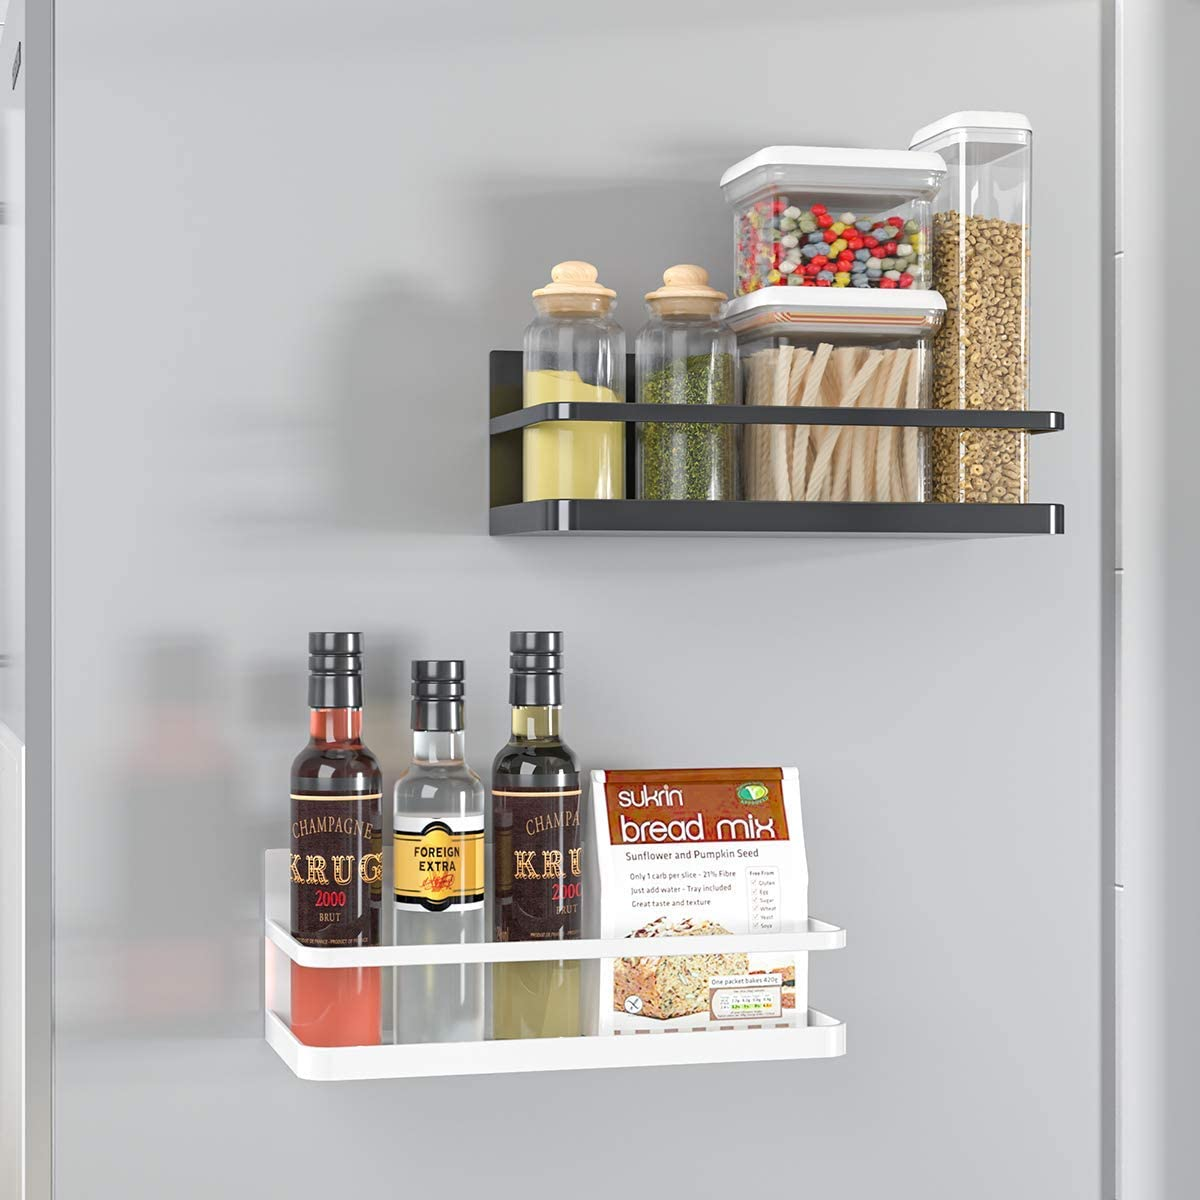 Magnetic Spice Rack, 95store Magnet Refrigerator Spice Shelf Organizer for Spices, Jar of Olive Oil, Cooking Oils, Salt, Pepper, Perfect Space Saver for Small Kitchen White, 2